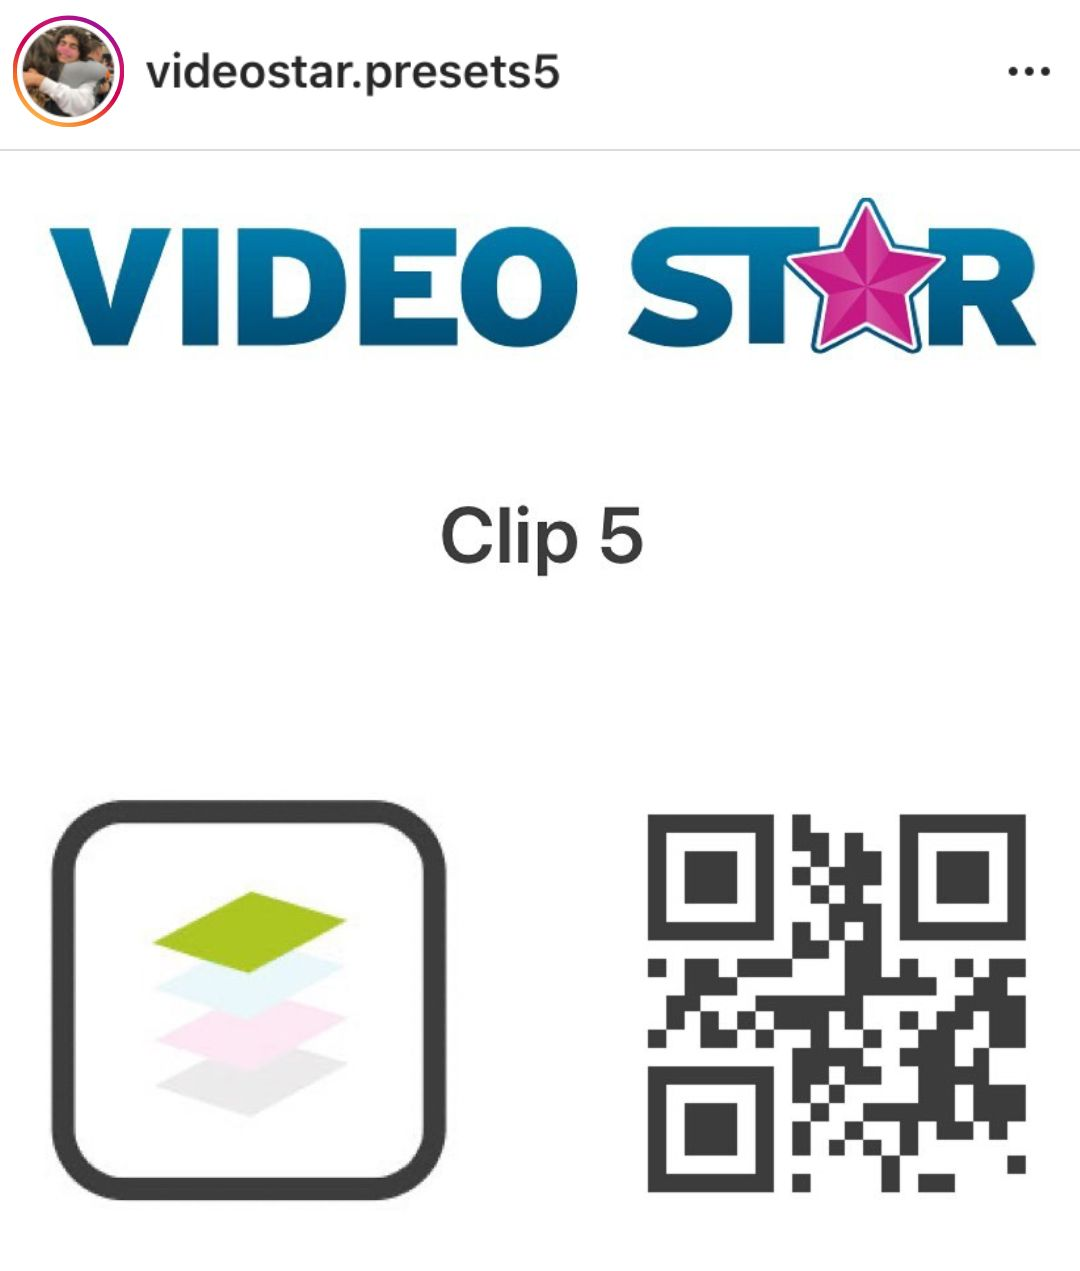 Pin By Person On Presets Coding Free Qr Code Video Editing Apps